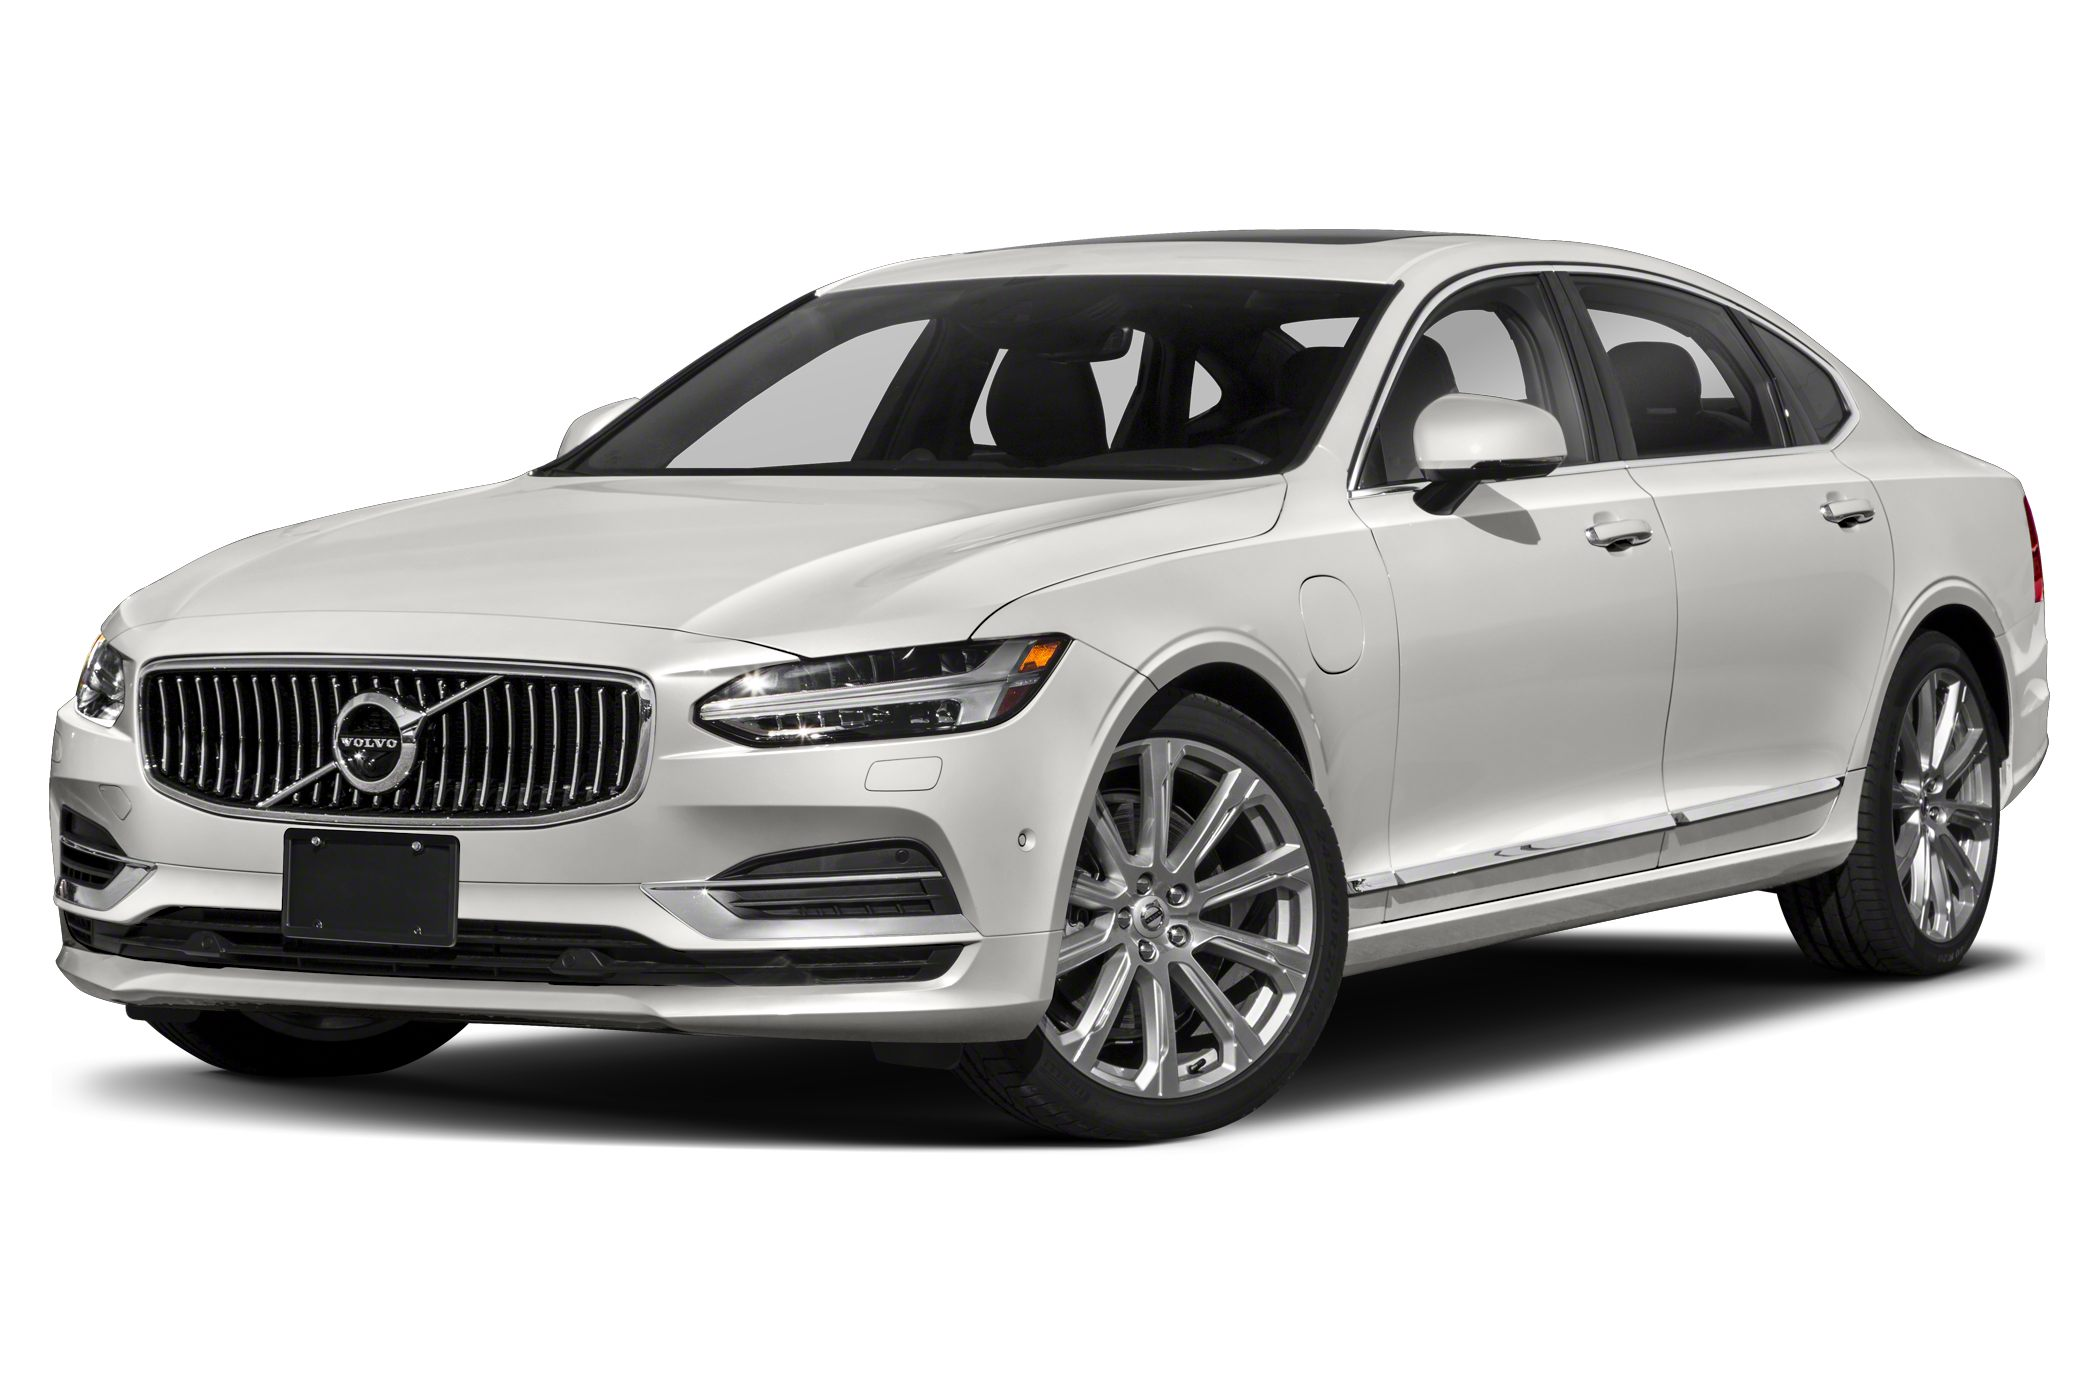 2018 Volvo S90 Hybrid Pricing And Specs